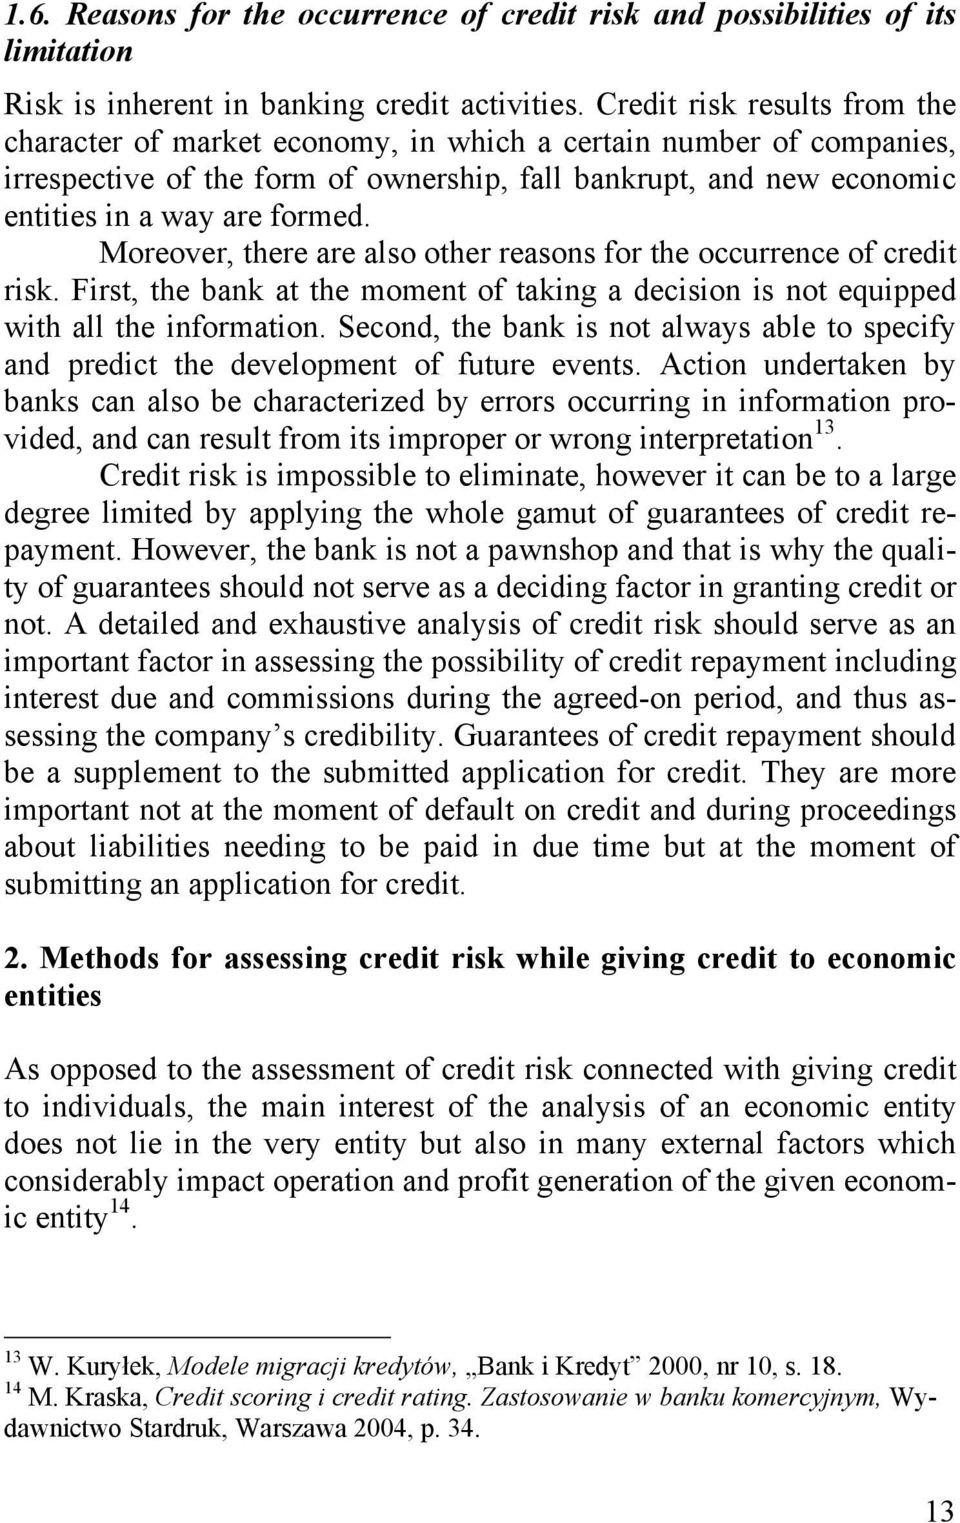 Moreover, there are also other reasons for the occurrence of credit risk. First, the bank at the moment of taking a decision is not equipped with all the information.